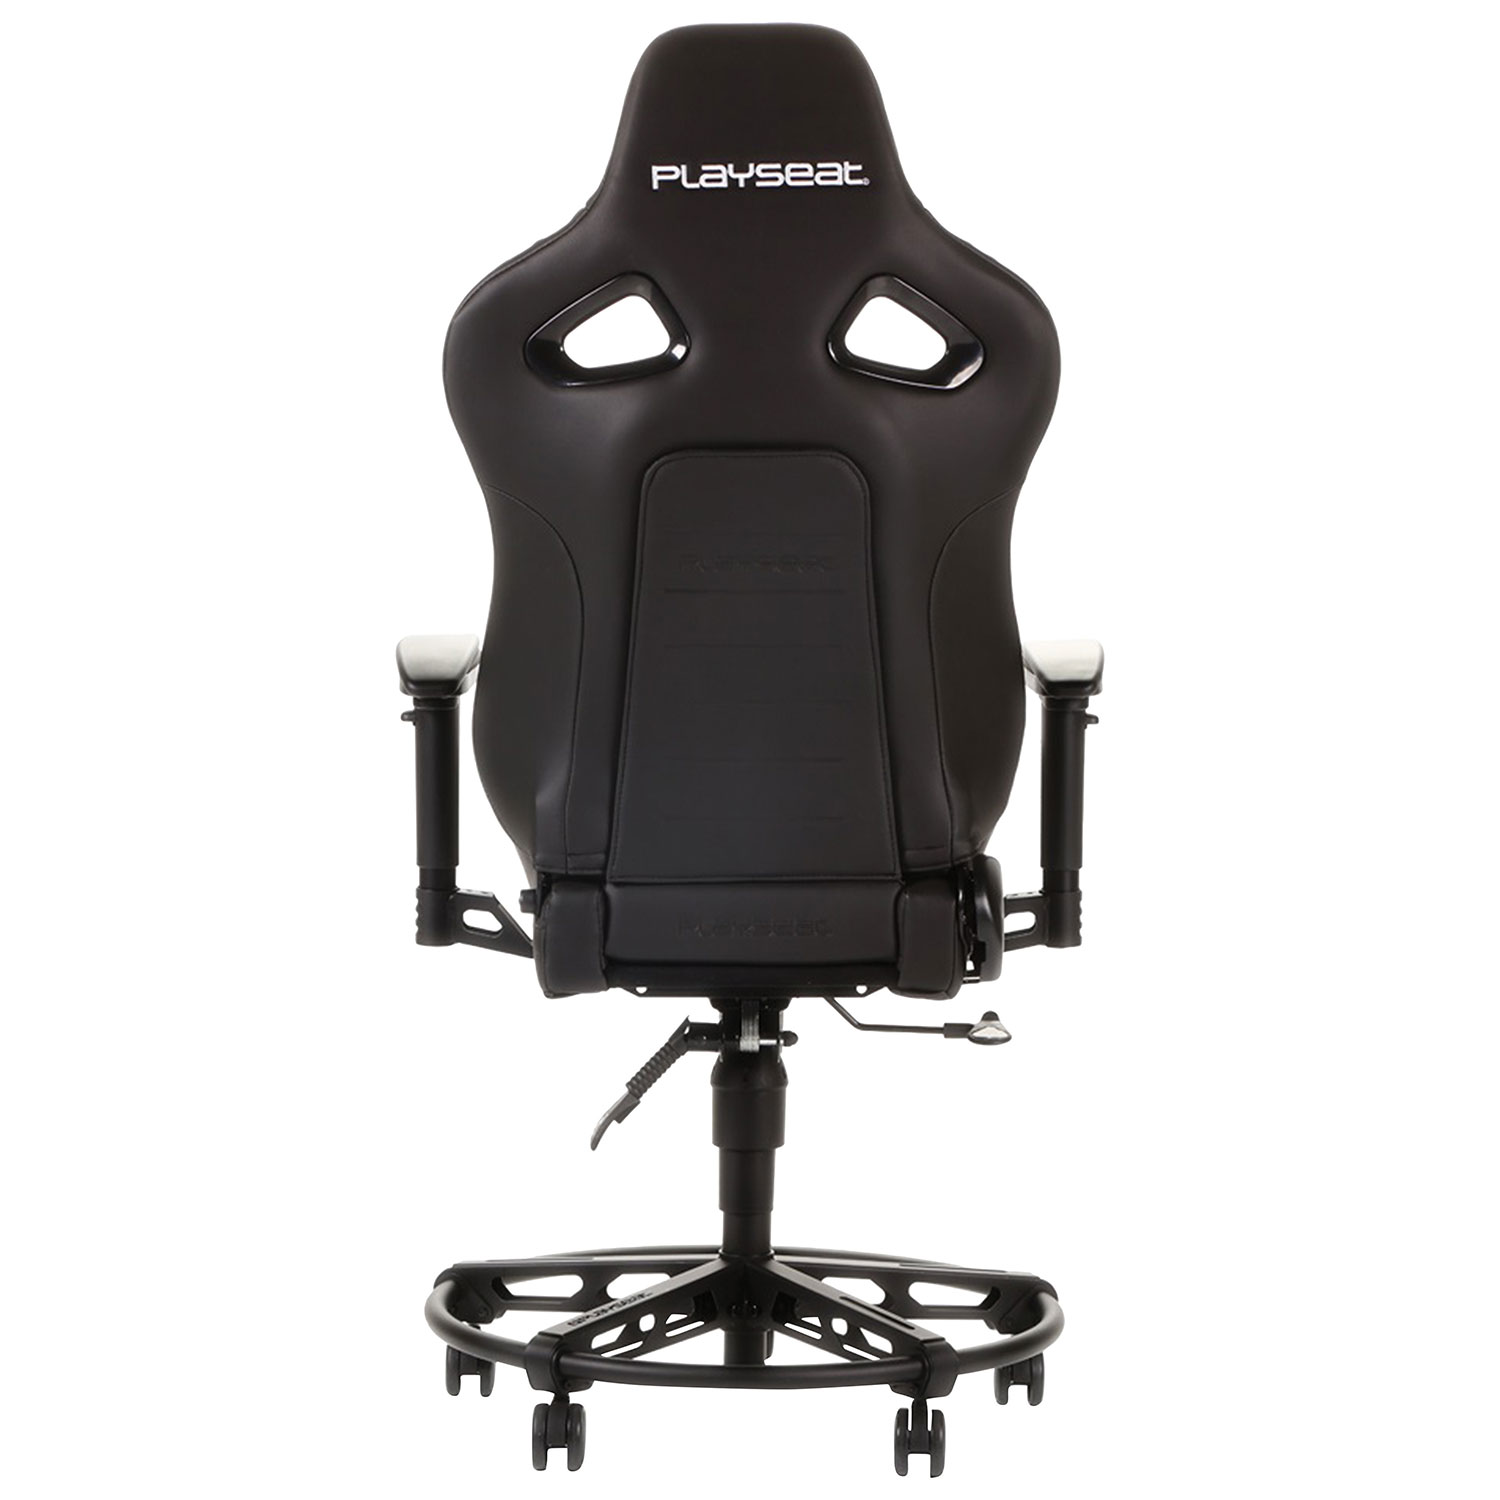 playseat l33t gaming chair - black : gaming chairs - best buy canada